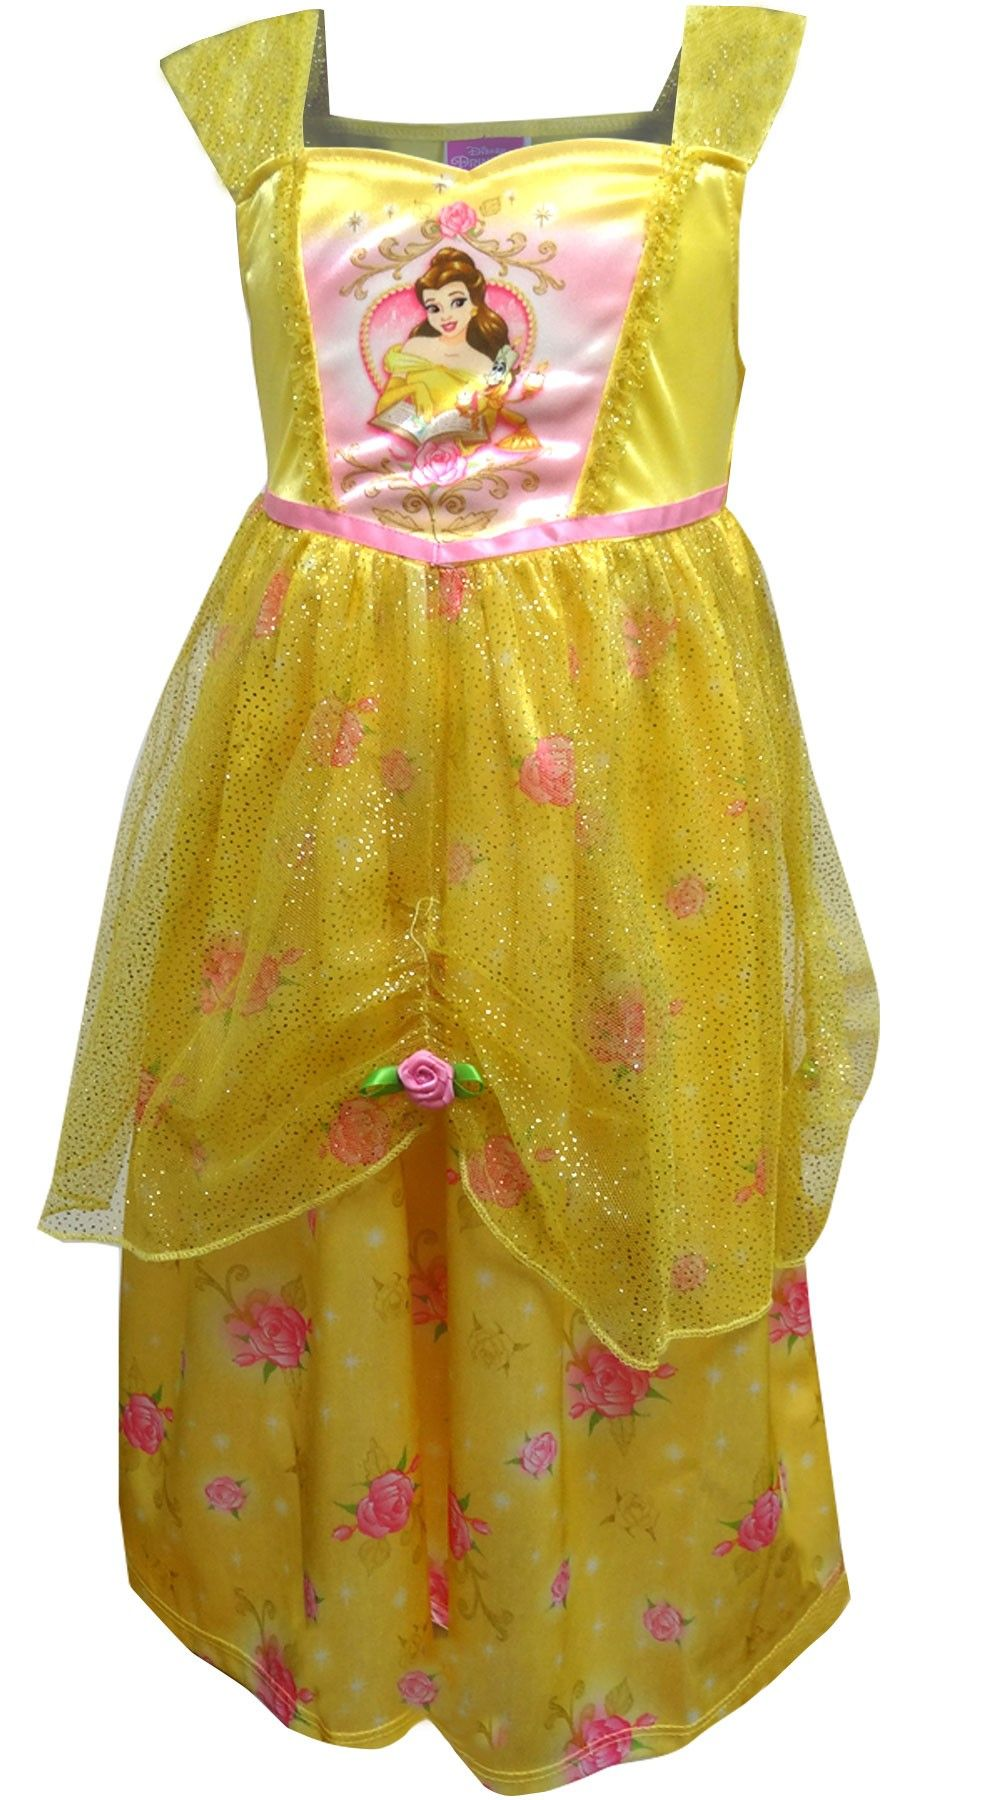 Disney Disney Beauty And The Beast Dress Like Belle Princess Nightgown Walmart Com Beauty And The Beast Dress Princess Nightgowns Disney Beauty And The Beast [ 1800 x 1001 Pixel ]